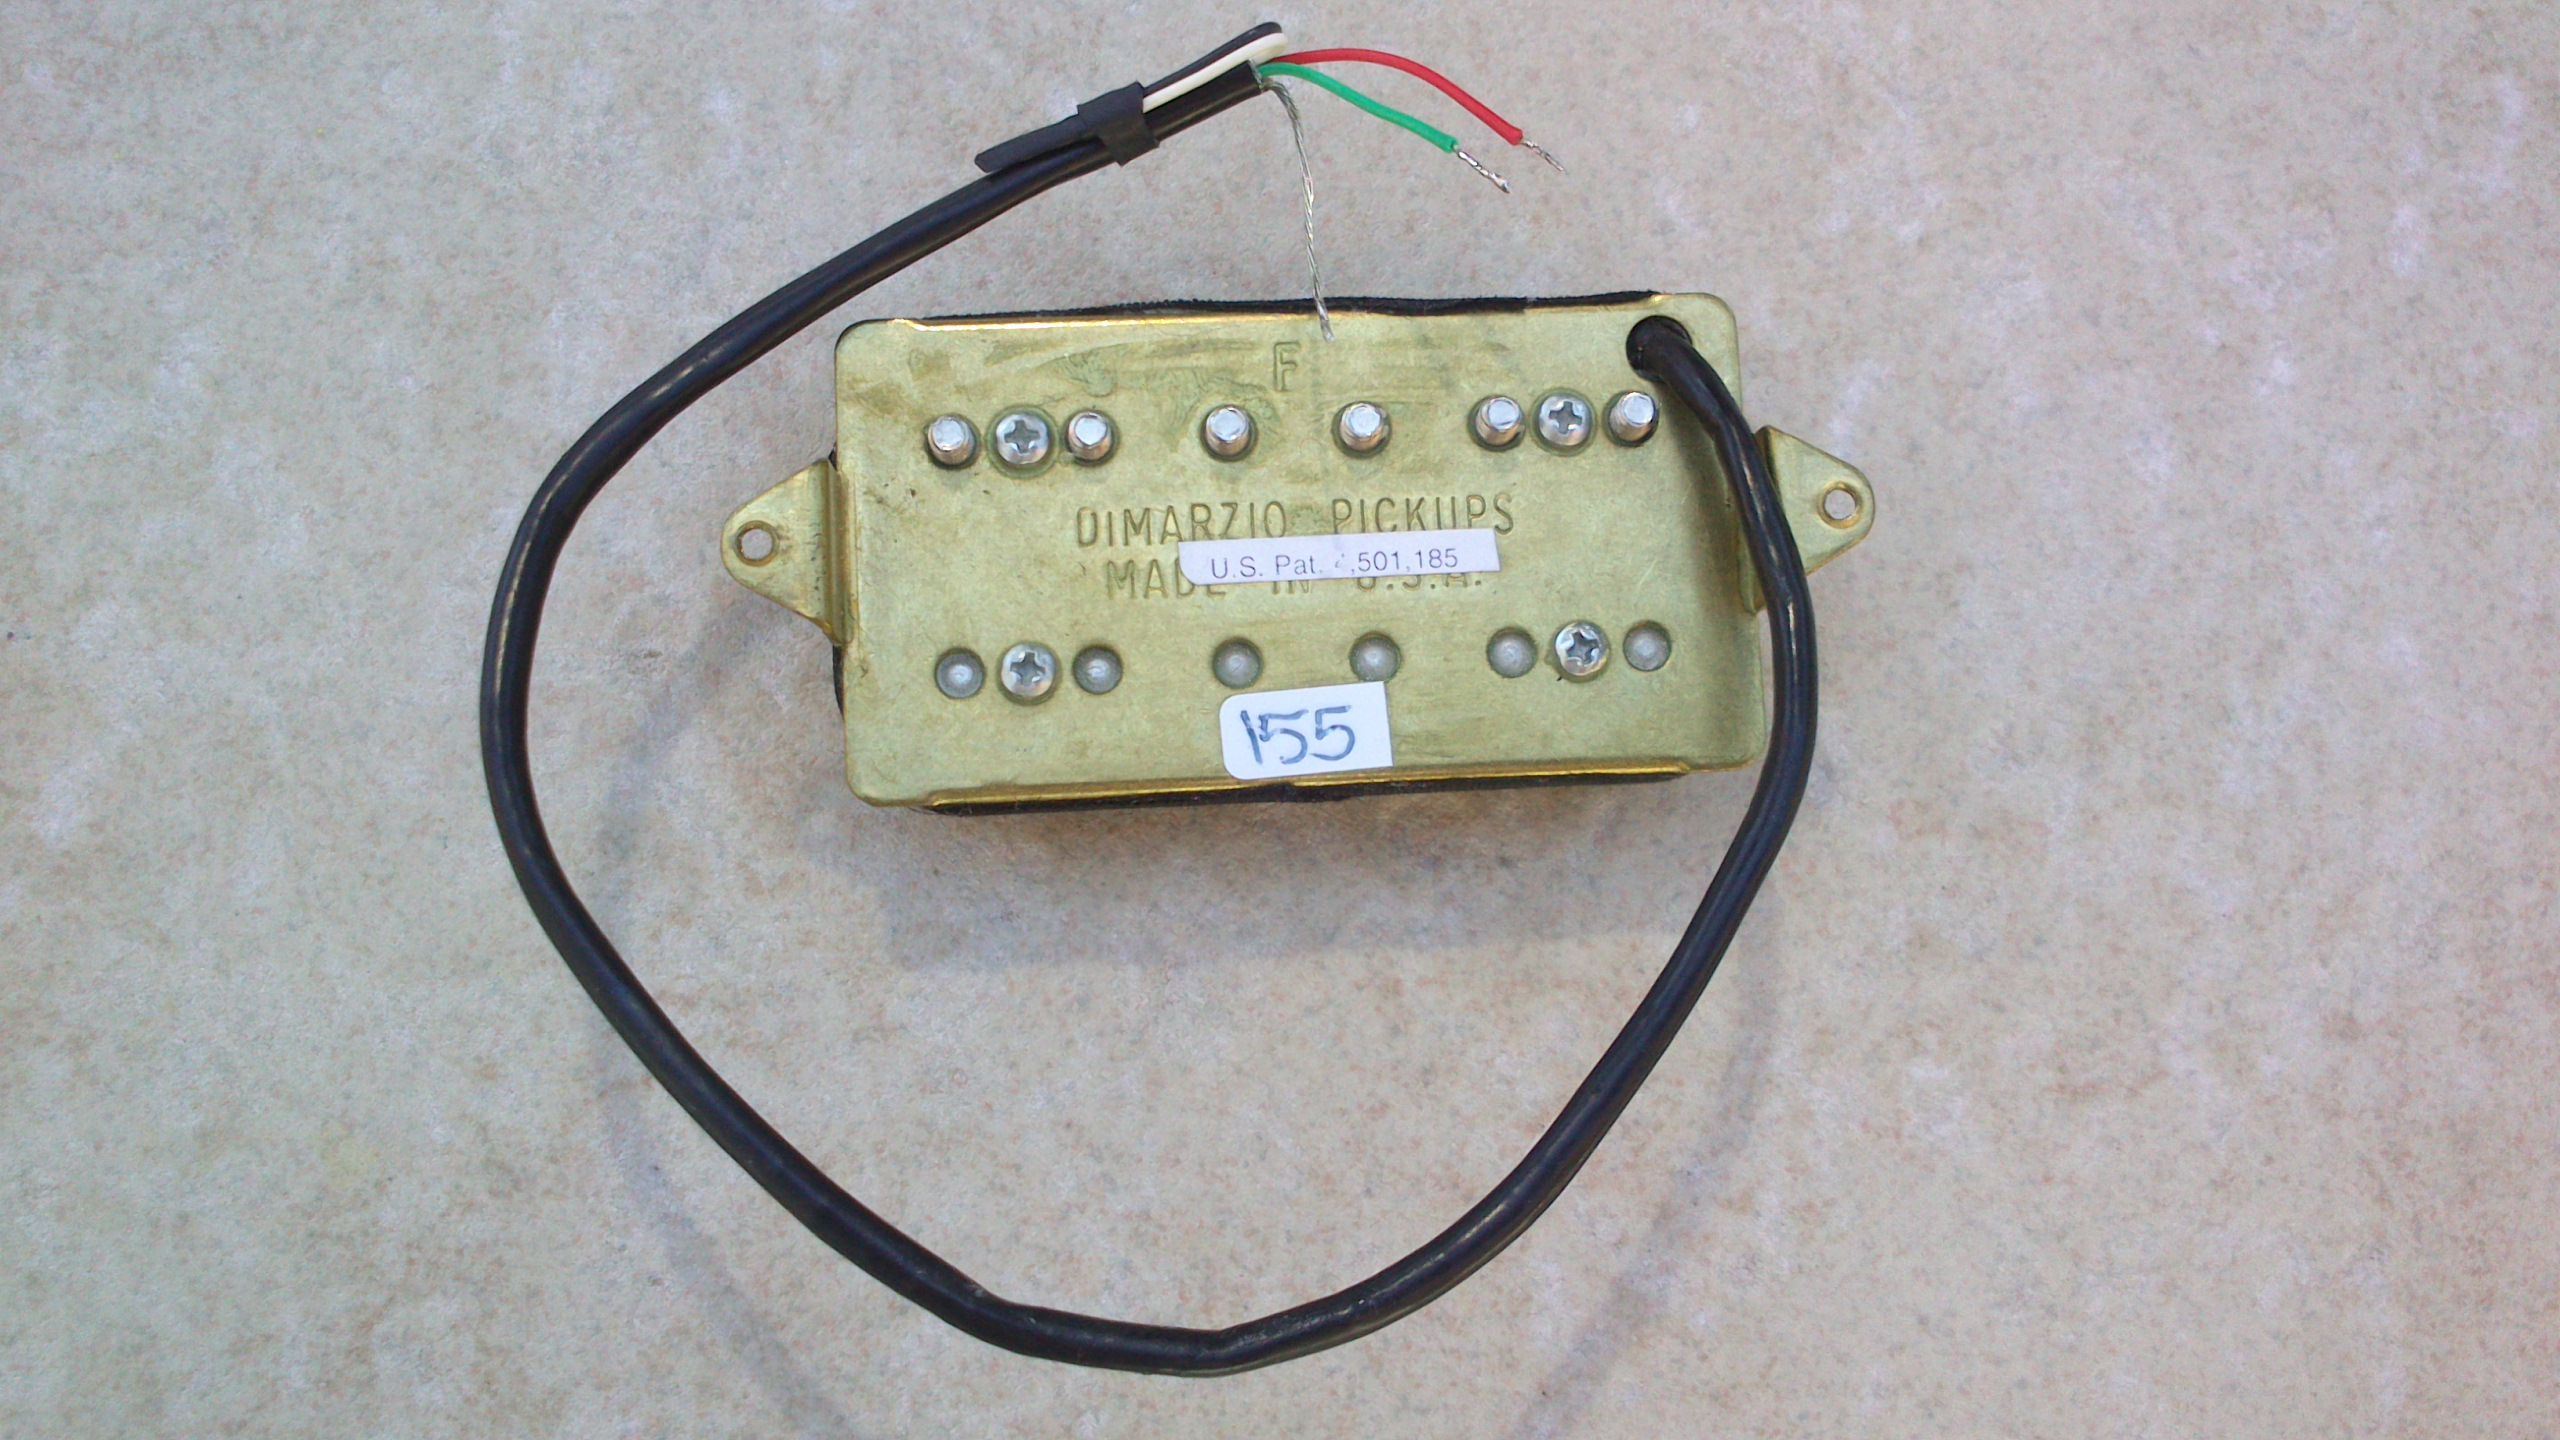 Excellent Two Humbuckers 5 Way Switch Thick Hh 5 Way Switch Wiring Square Gretsch Wiring Harness Solar Panel Diagram Youthful Solar Panel Wiring Guide PinkSolar Panel Diagrams DiMarzio DP155 The Tone Zone Image (#658723)   Audiofanzine